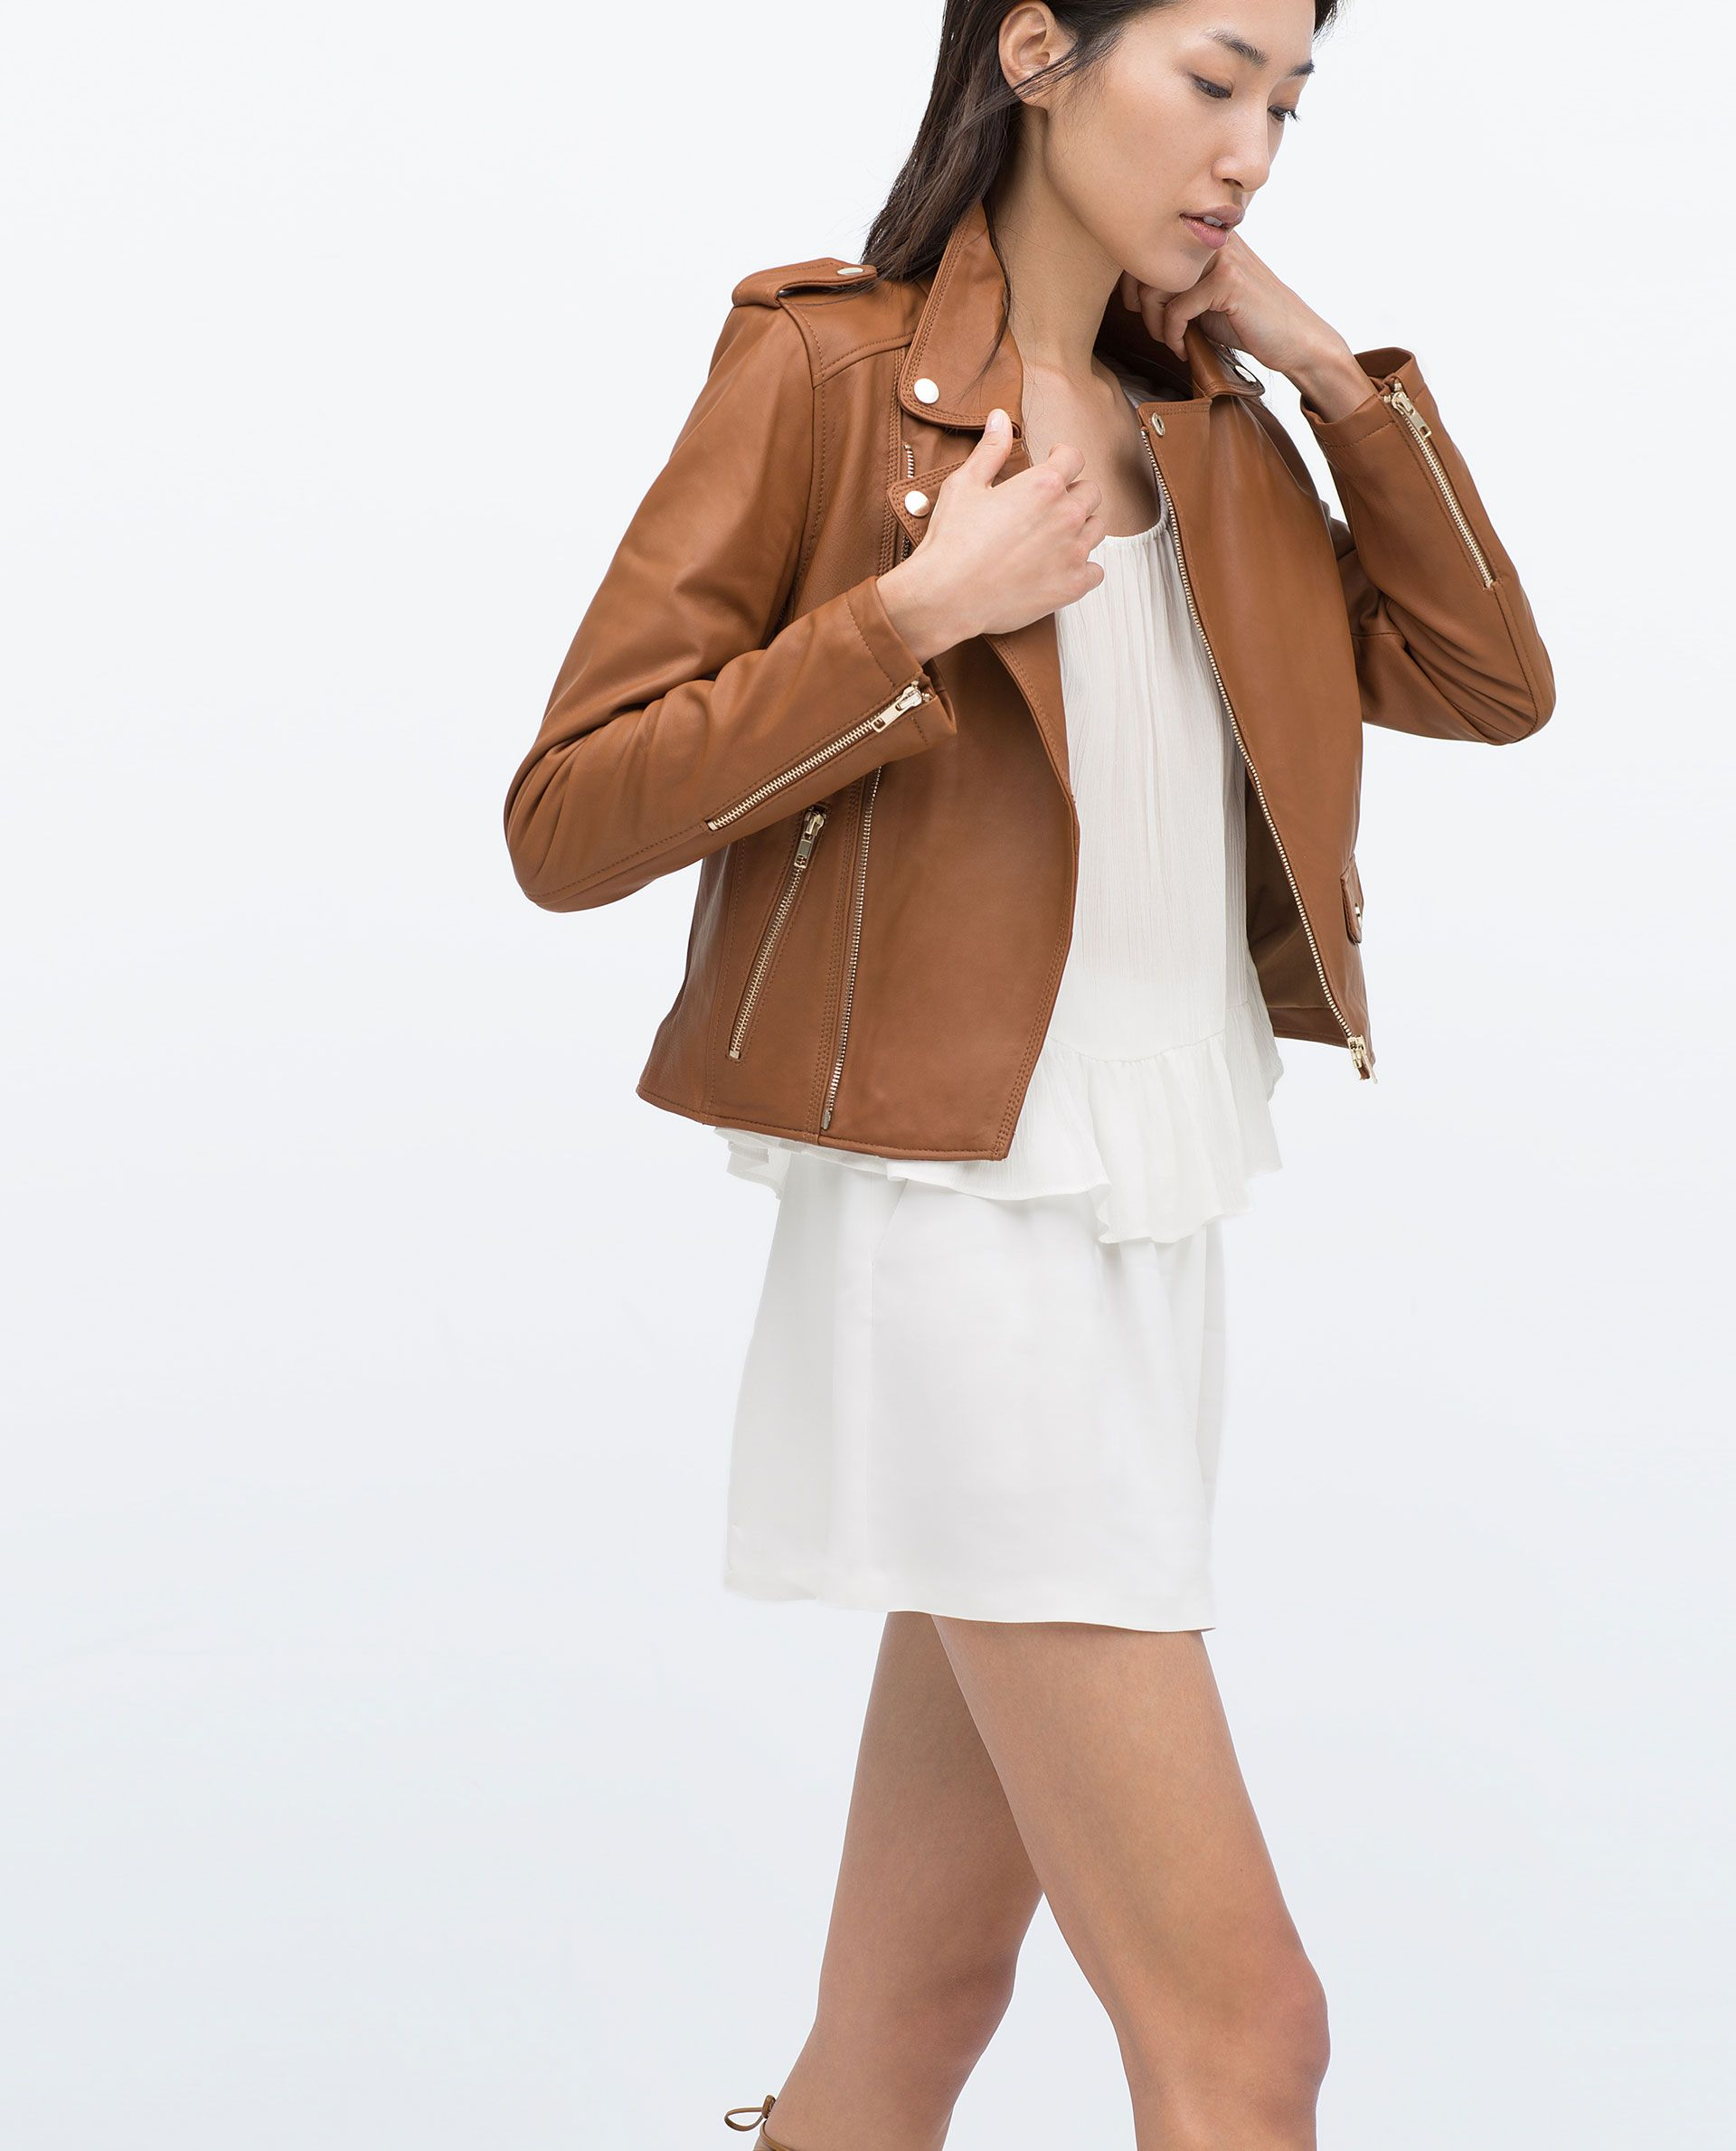 Image 4 of LEATHER JACKET from Zara Jackets, Jackets for